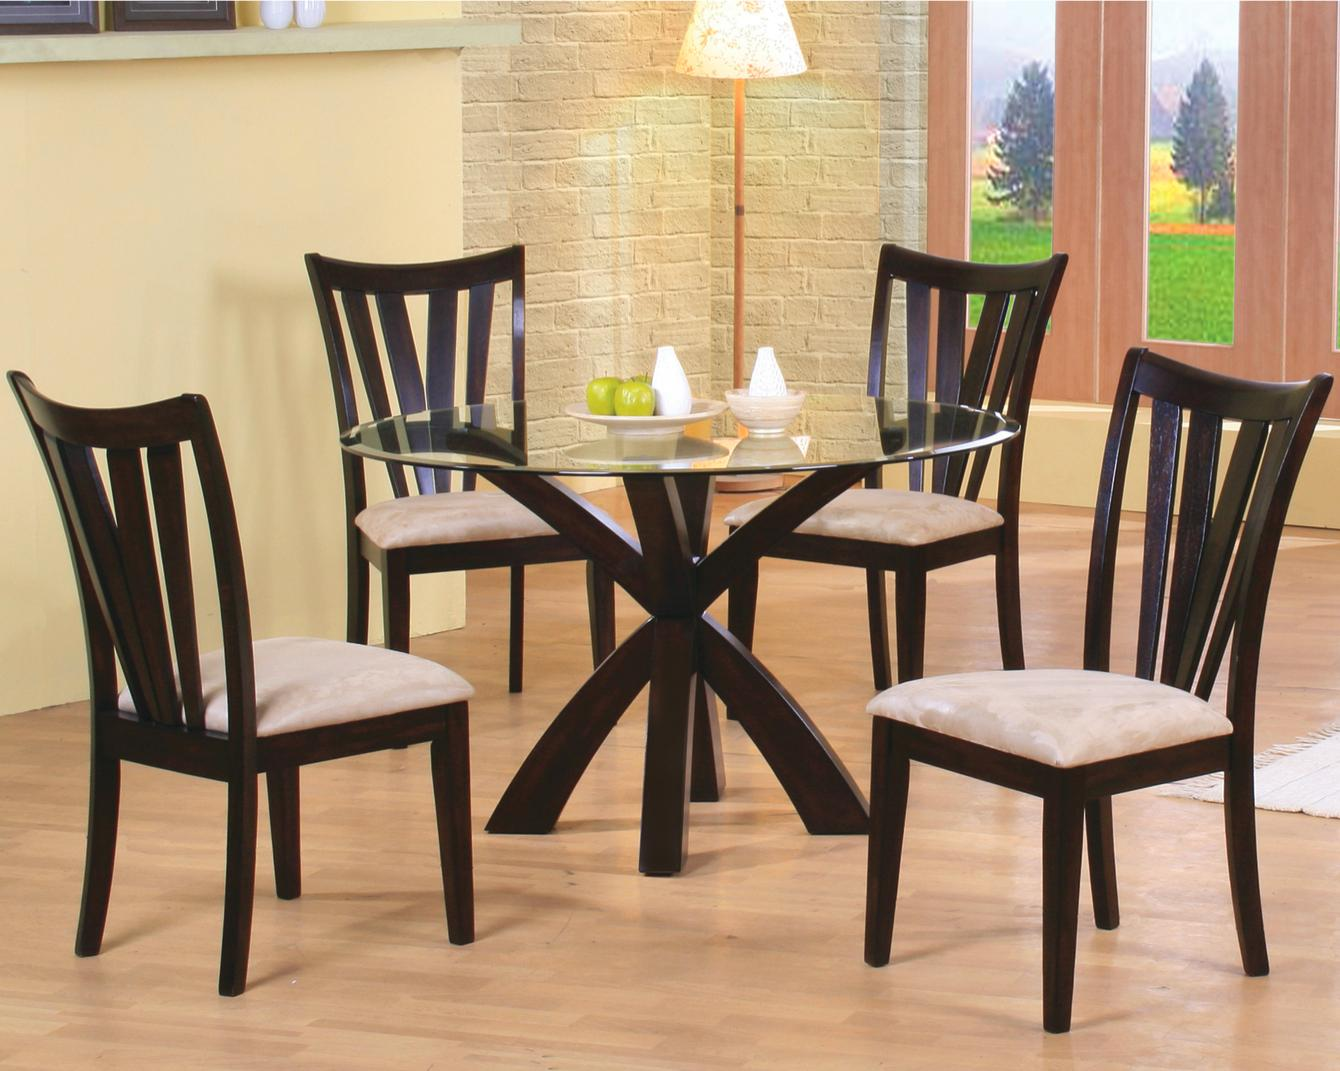 Shoemaker 5 Piece Dining Set By Coaster